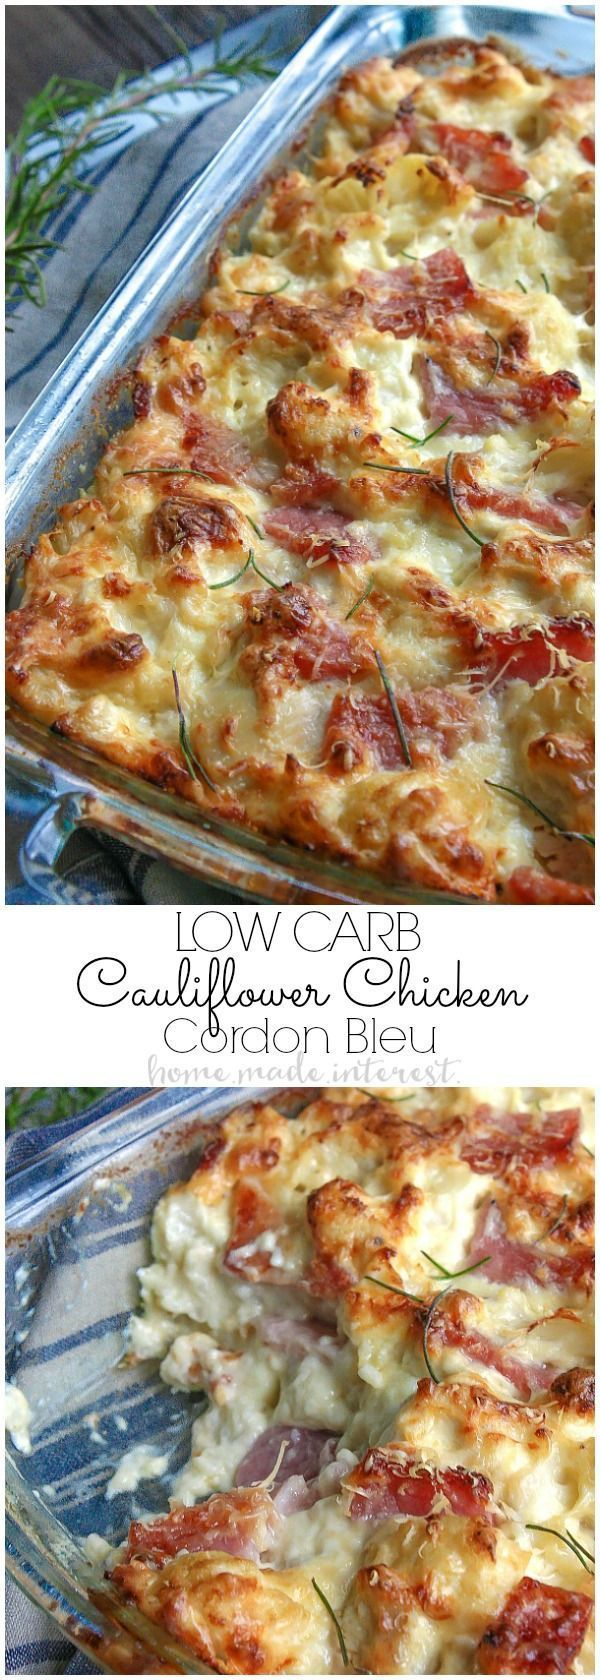 Low Carb Chicken Cordon Bleu is an easy low carb dinner recipe made with cauliflower, ham, and chicken, covered in a creamy dijon sauce.